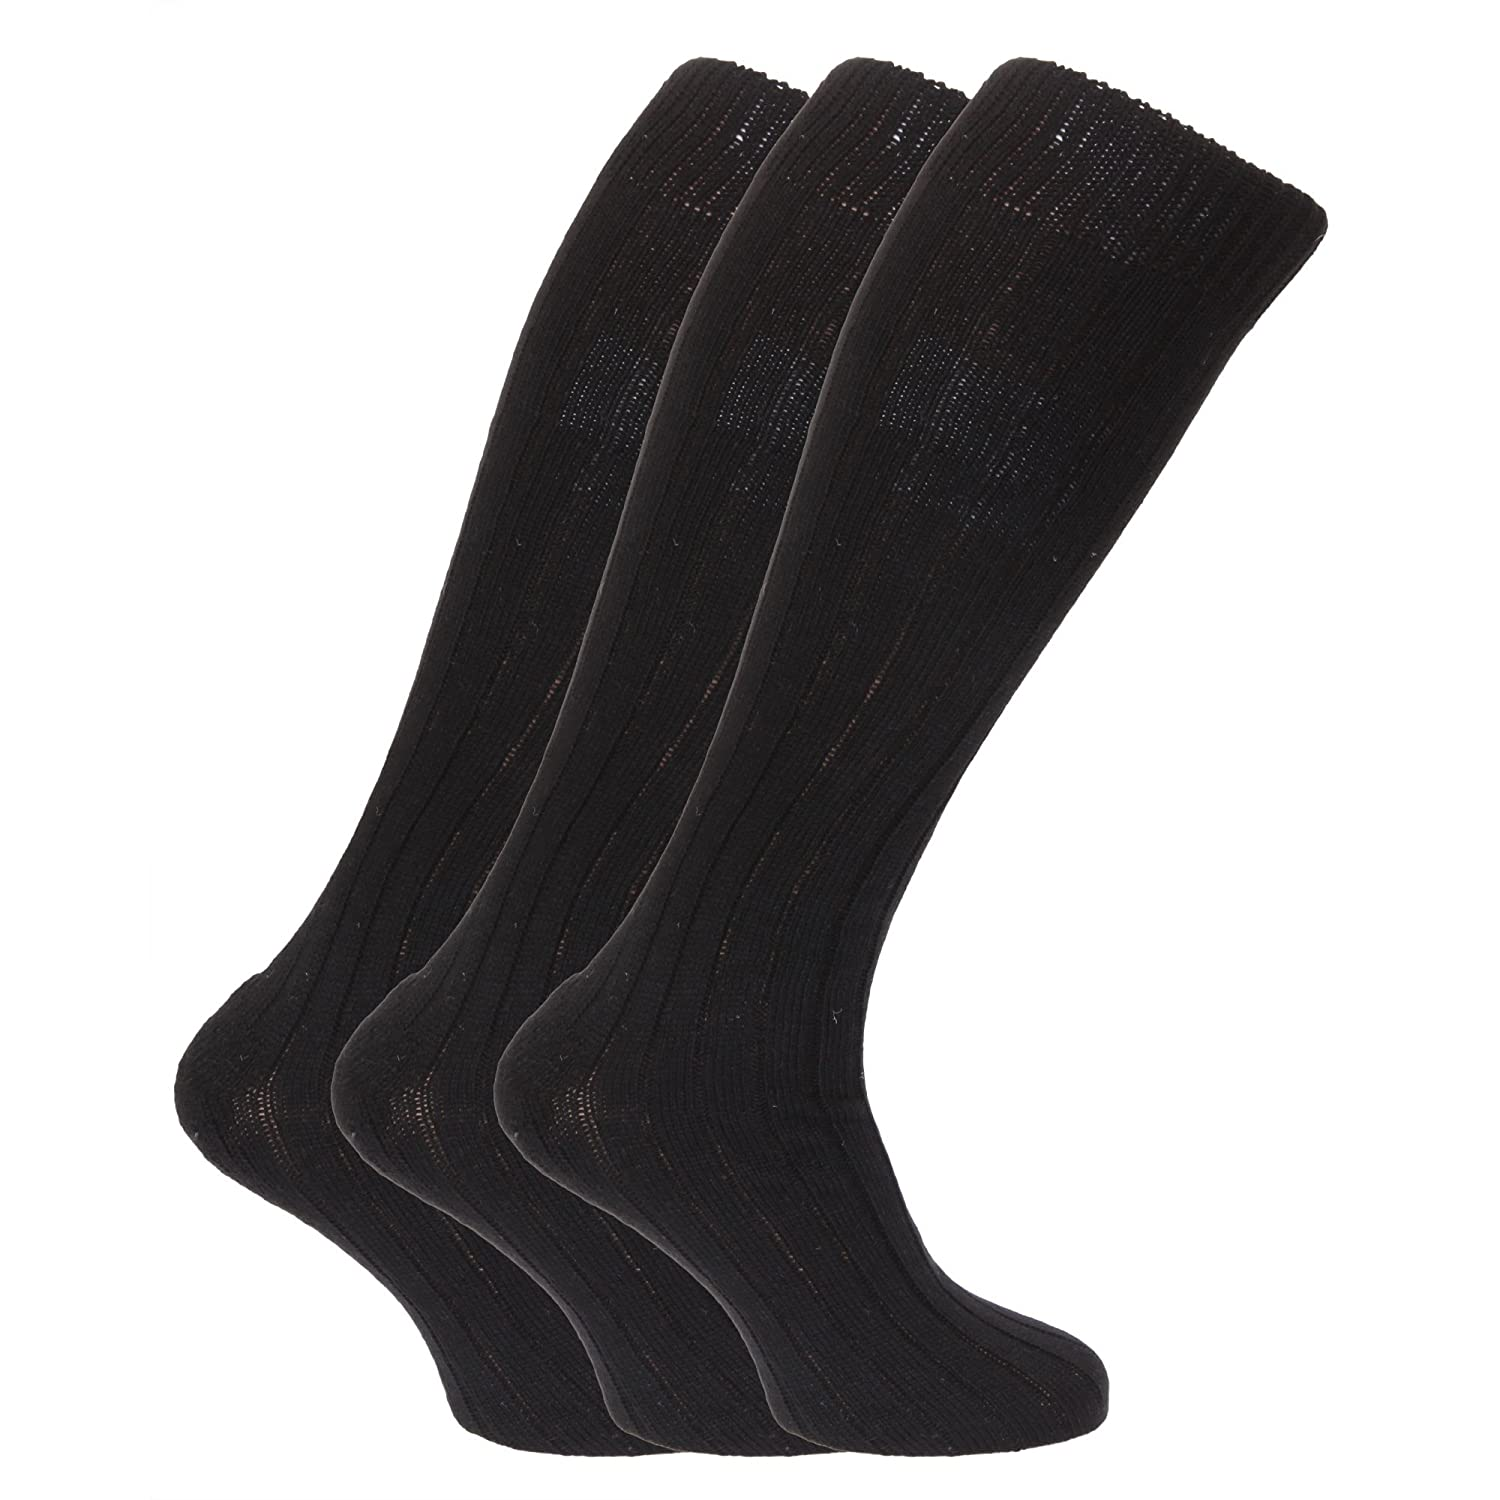 Mens Wool Blend Long Length Socks With Padded Sole (Pack Of 3) EUR 39-45) (Black) Severyn UTMB160_3